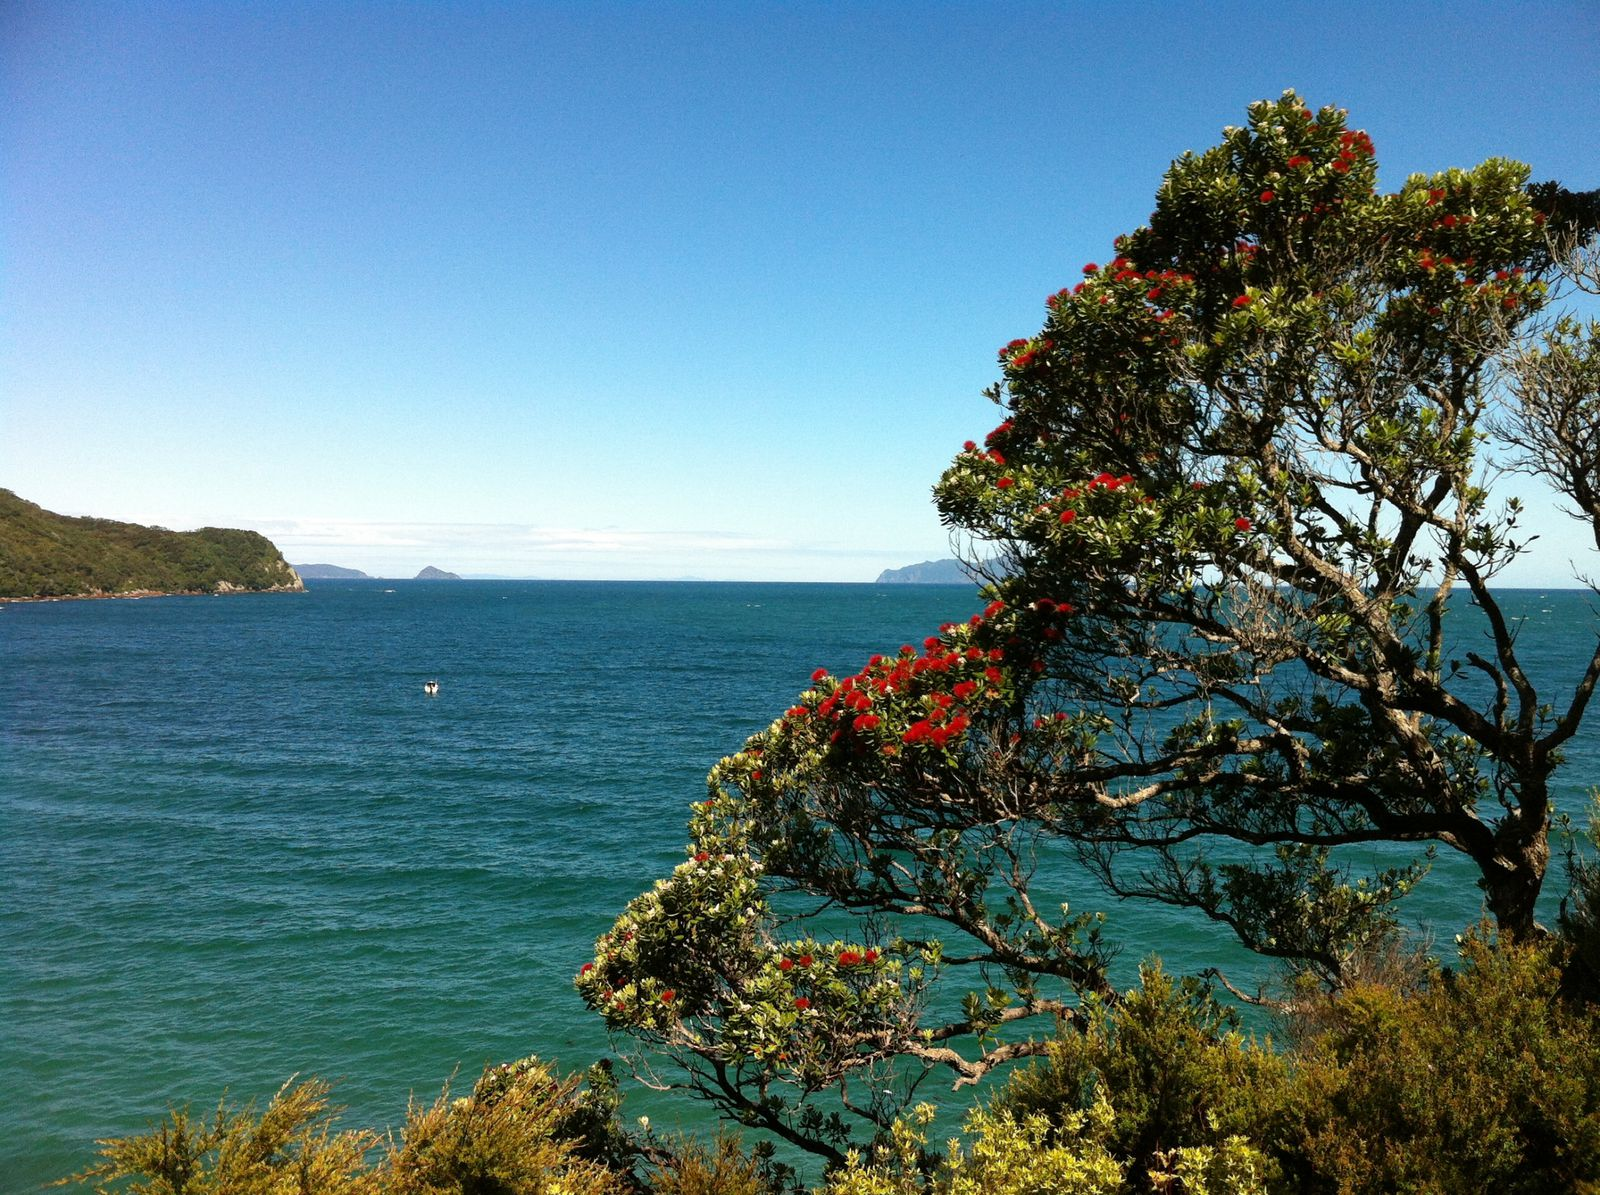 Whangarei Heads : Woolshed Bay, Busby Head and Smugglers Cove